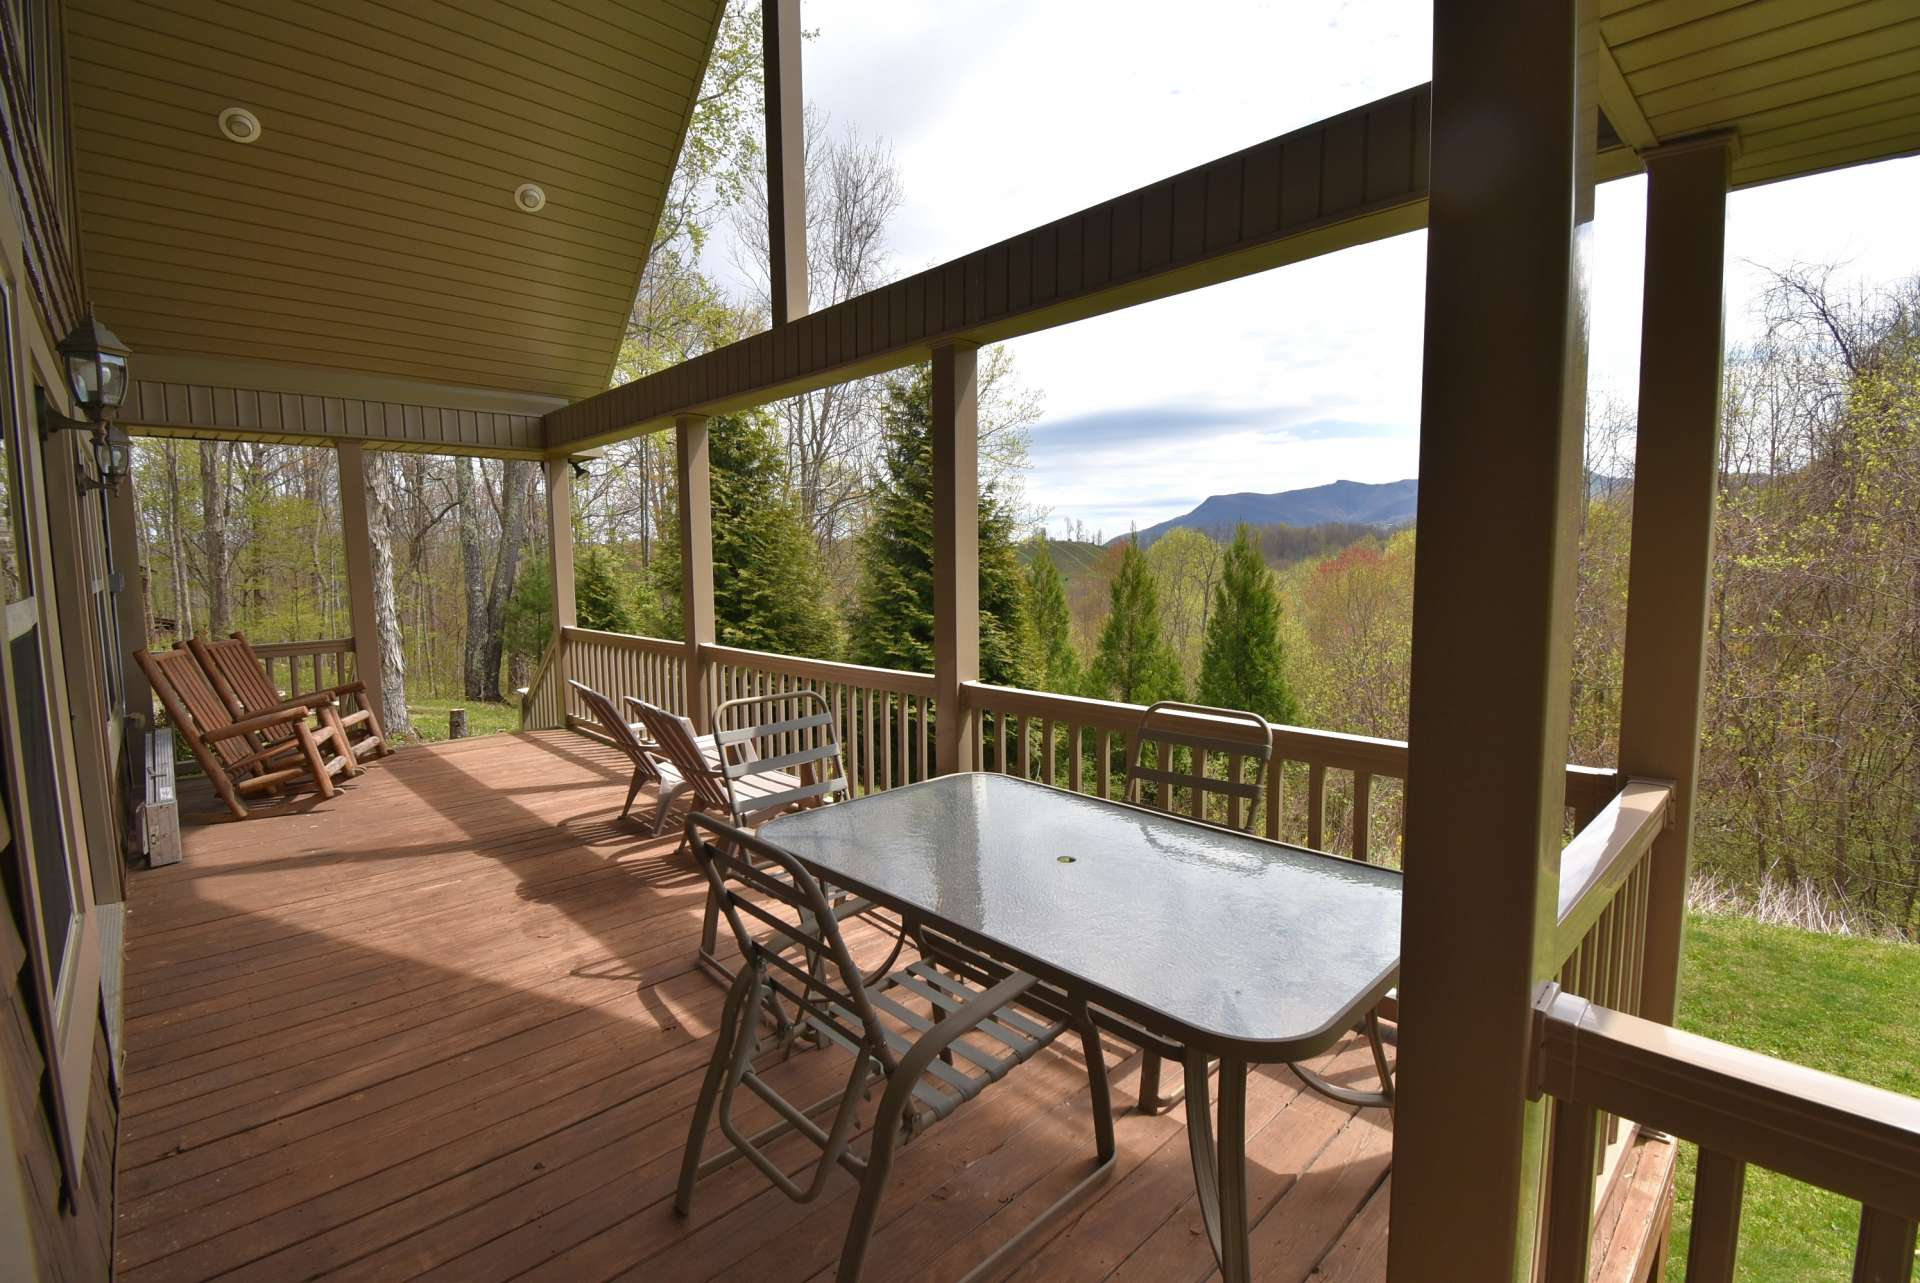 For your outdoor grilling, dining, and entertaining, this home offers a large vaulted covered porch where you will enjoy views of  Three Top Mountain and seasonal views of the Peak.